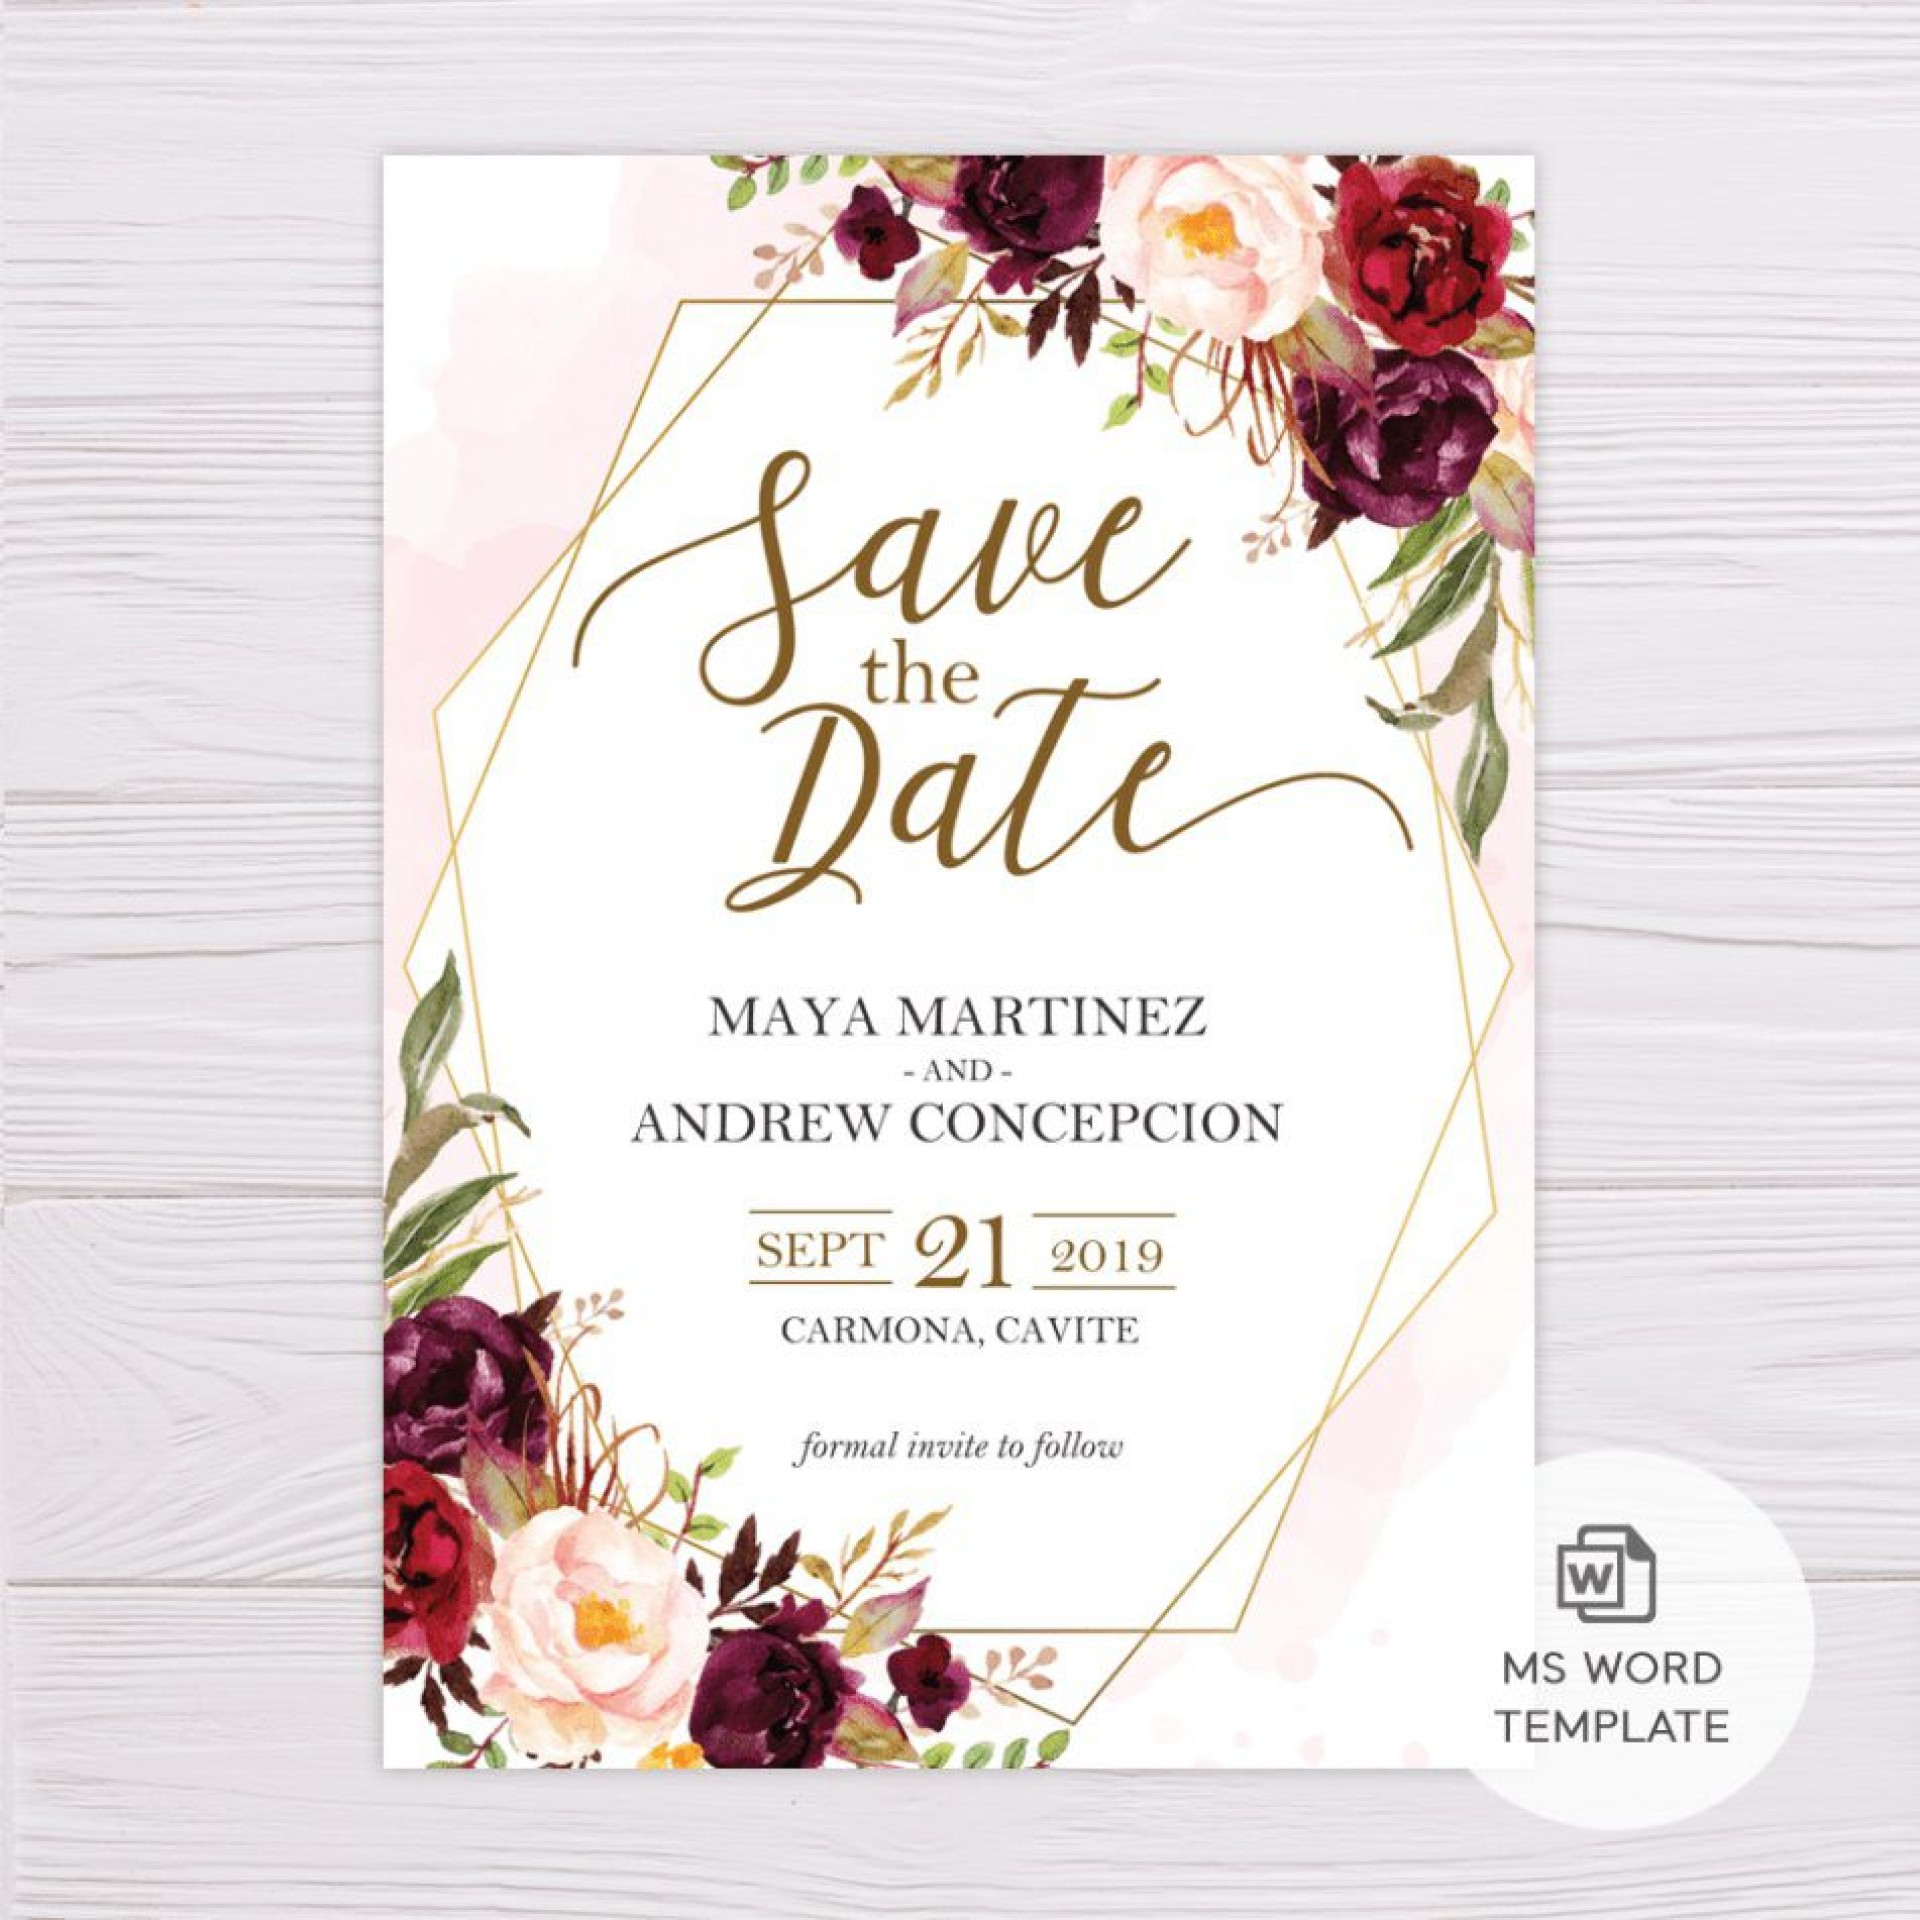 005 Imposing Save The Date Template Word Picture  Free Customizable For Holiday Party1920